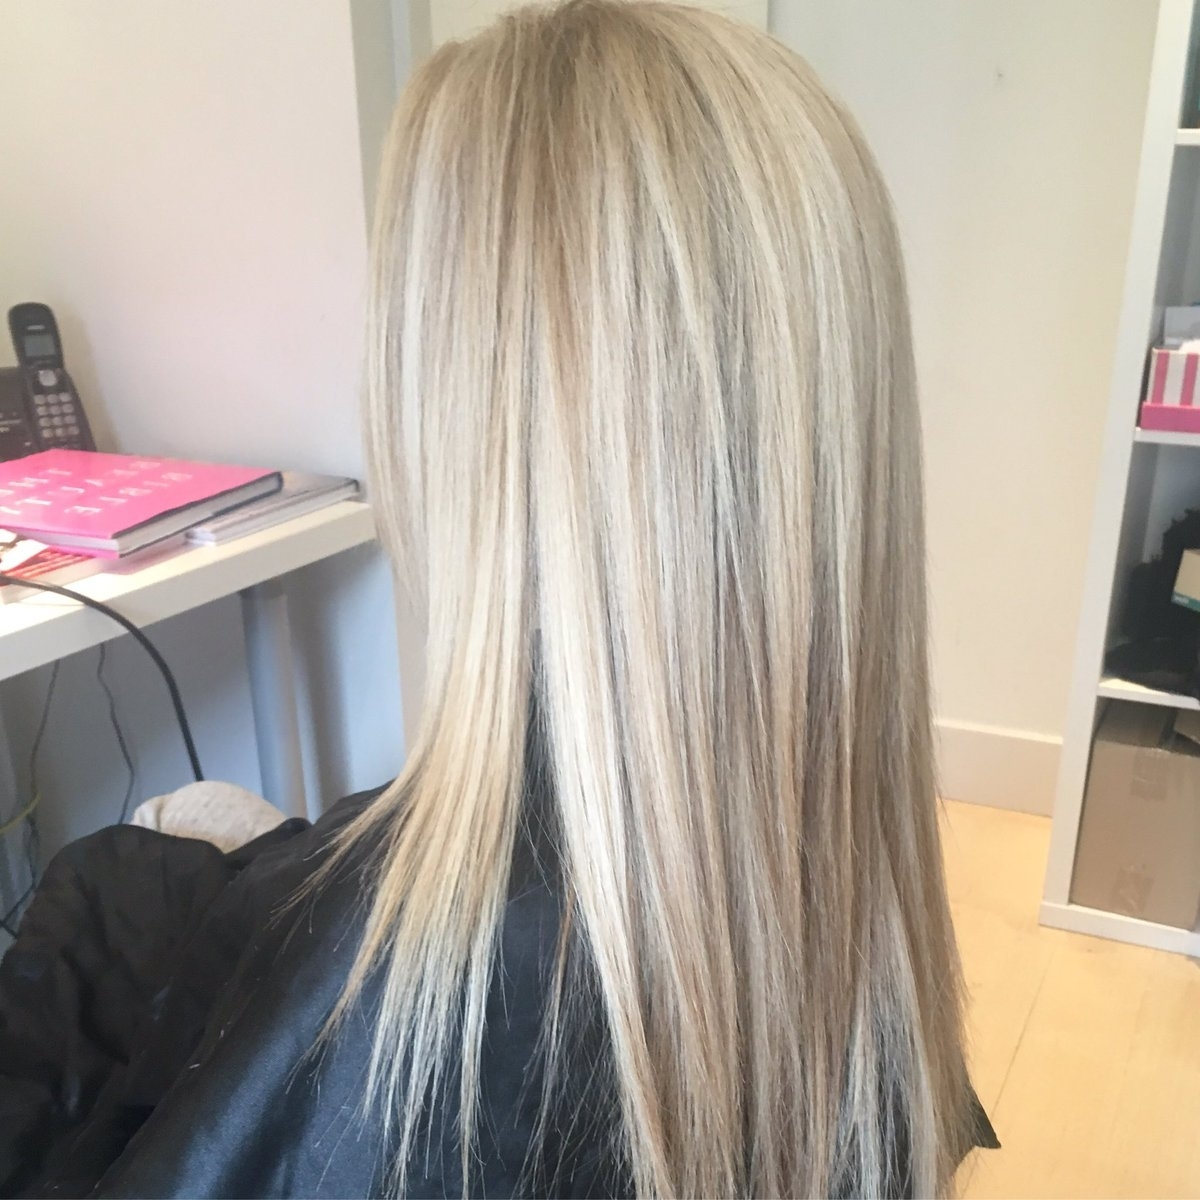 Creamy Blonde Hair – Best Image Of Blonde Hair 2018 Regarding Most Recently Released Creamy Blonde Fade Hairstyles (View 8 of 20)